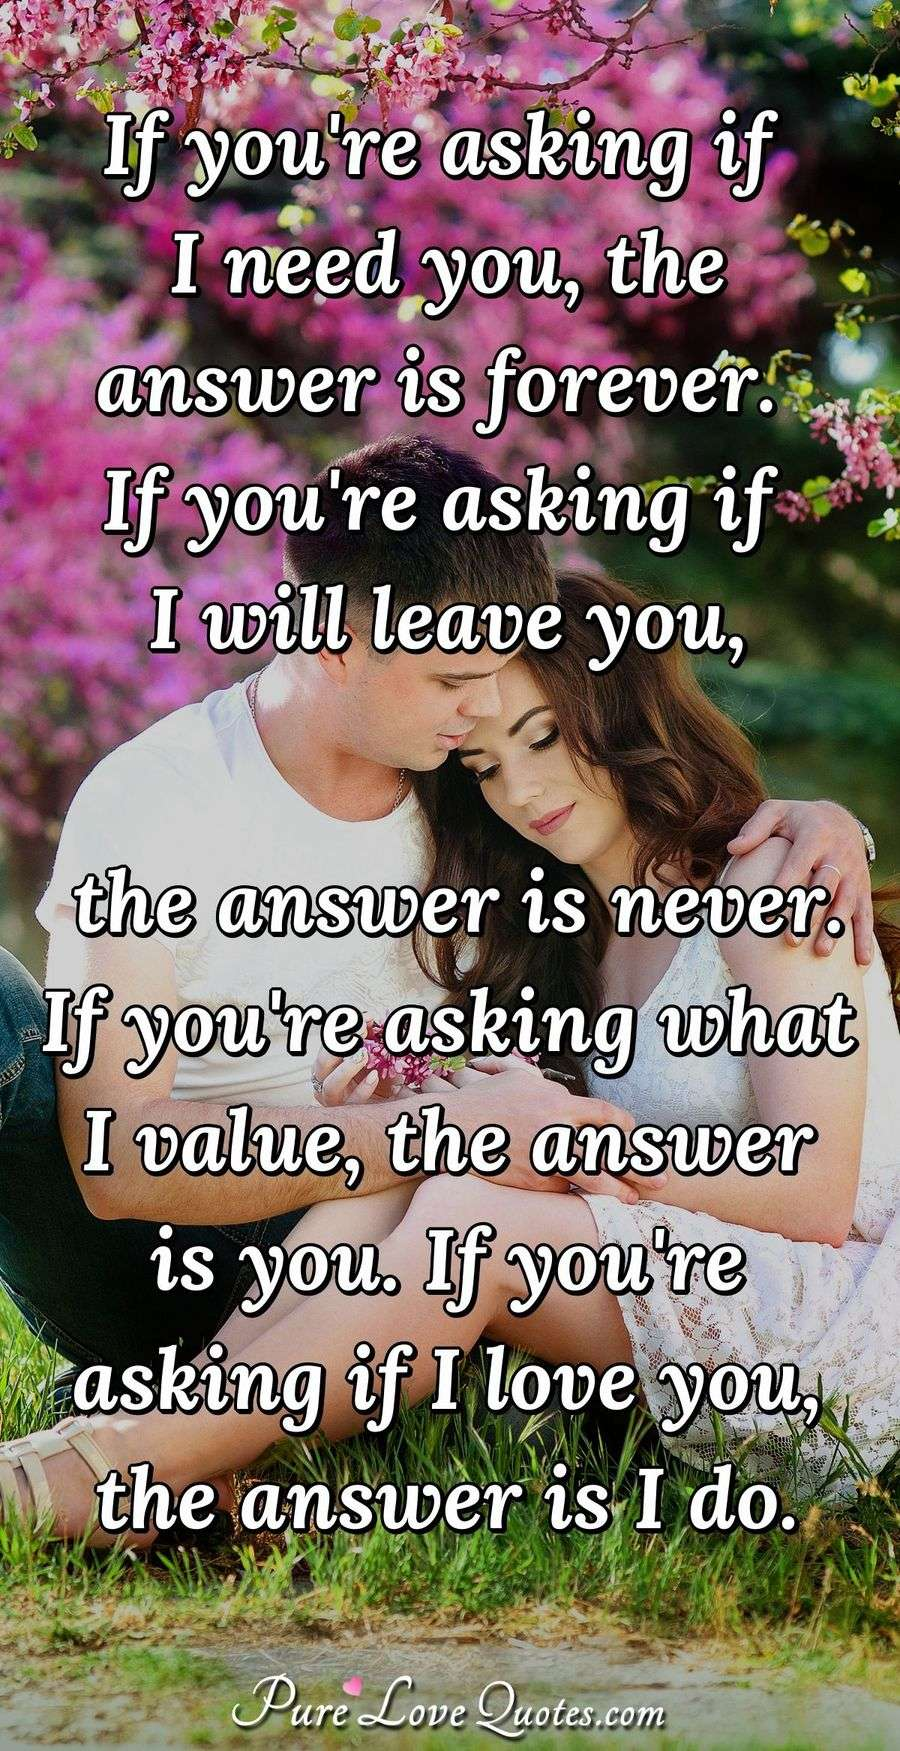 Need Love Quotes Pleasing If You're Asking If I Need You The Answer Is Foreverif You're